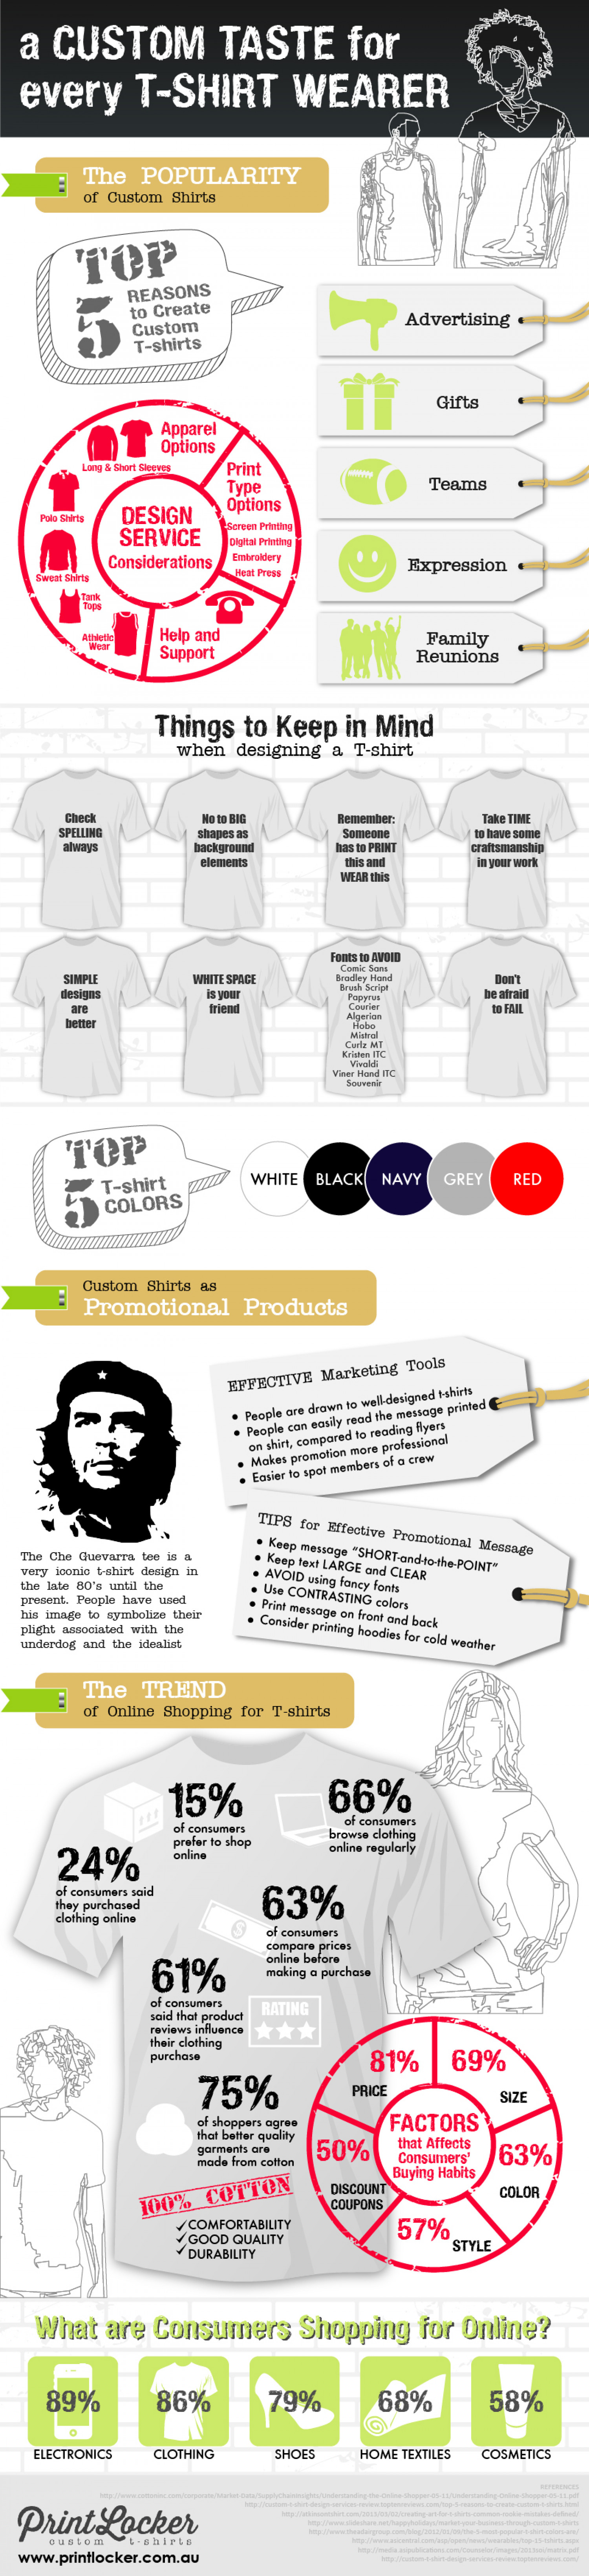 A Custom Taste for Every T-Shirt Wearer Infographic